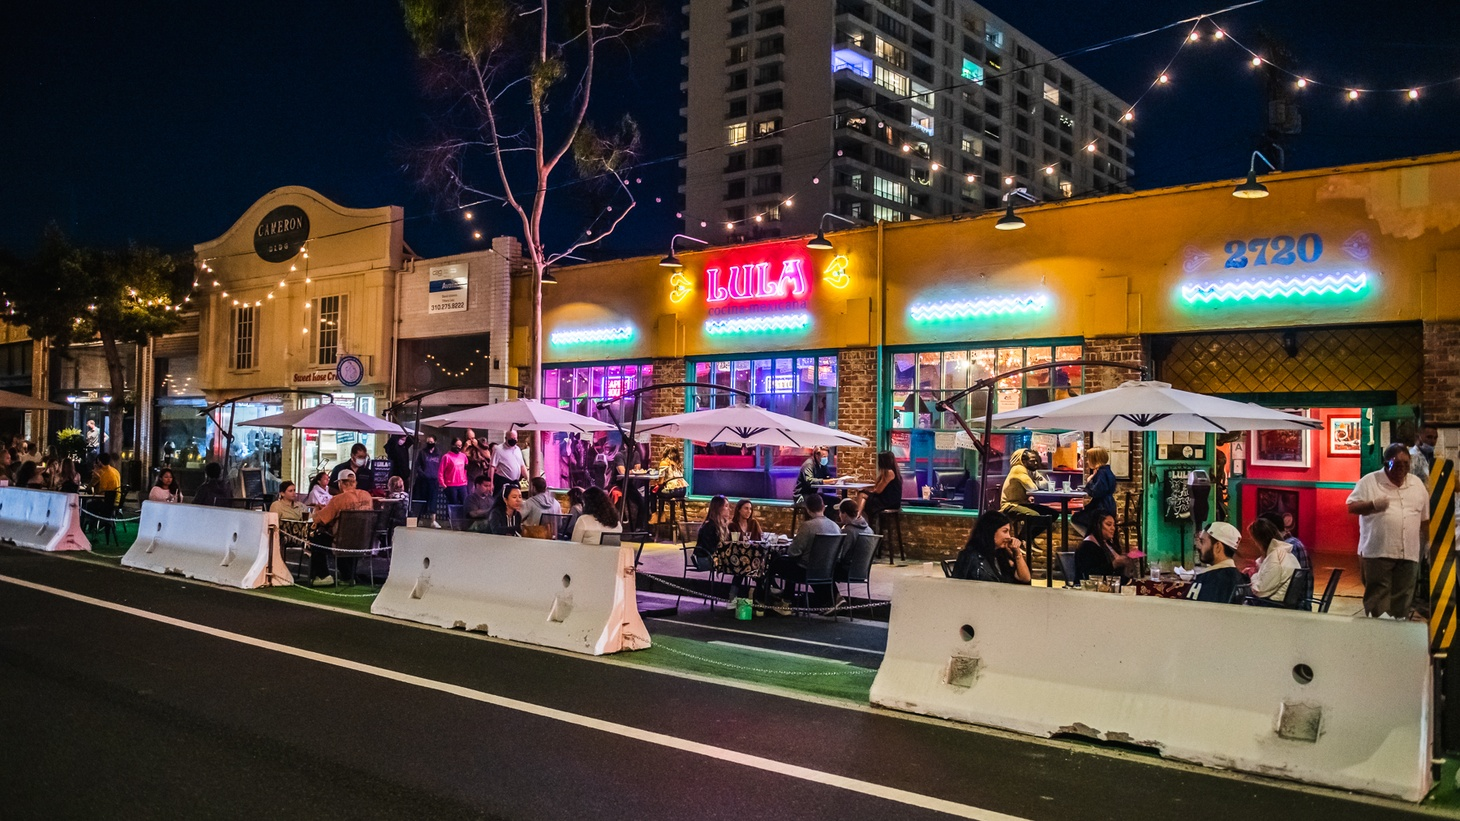 Main Street restaurants such as Lula can now put diners in the parking lane. The City of Santa Monica installed the heavy concrete barriers, known as K-rails.